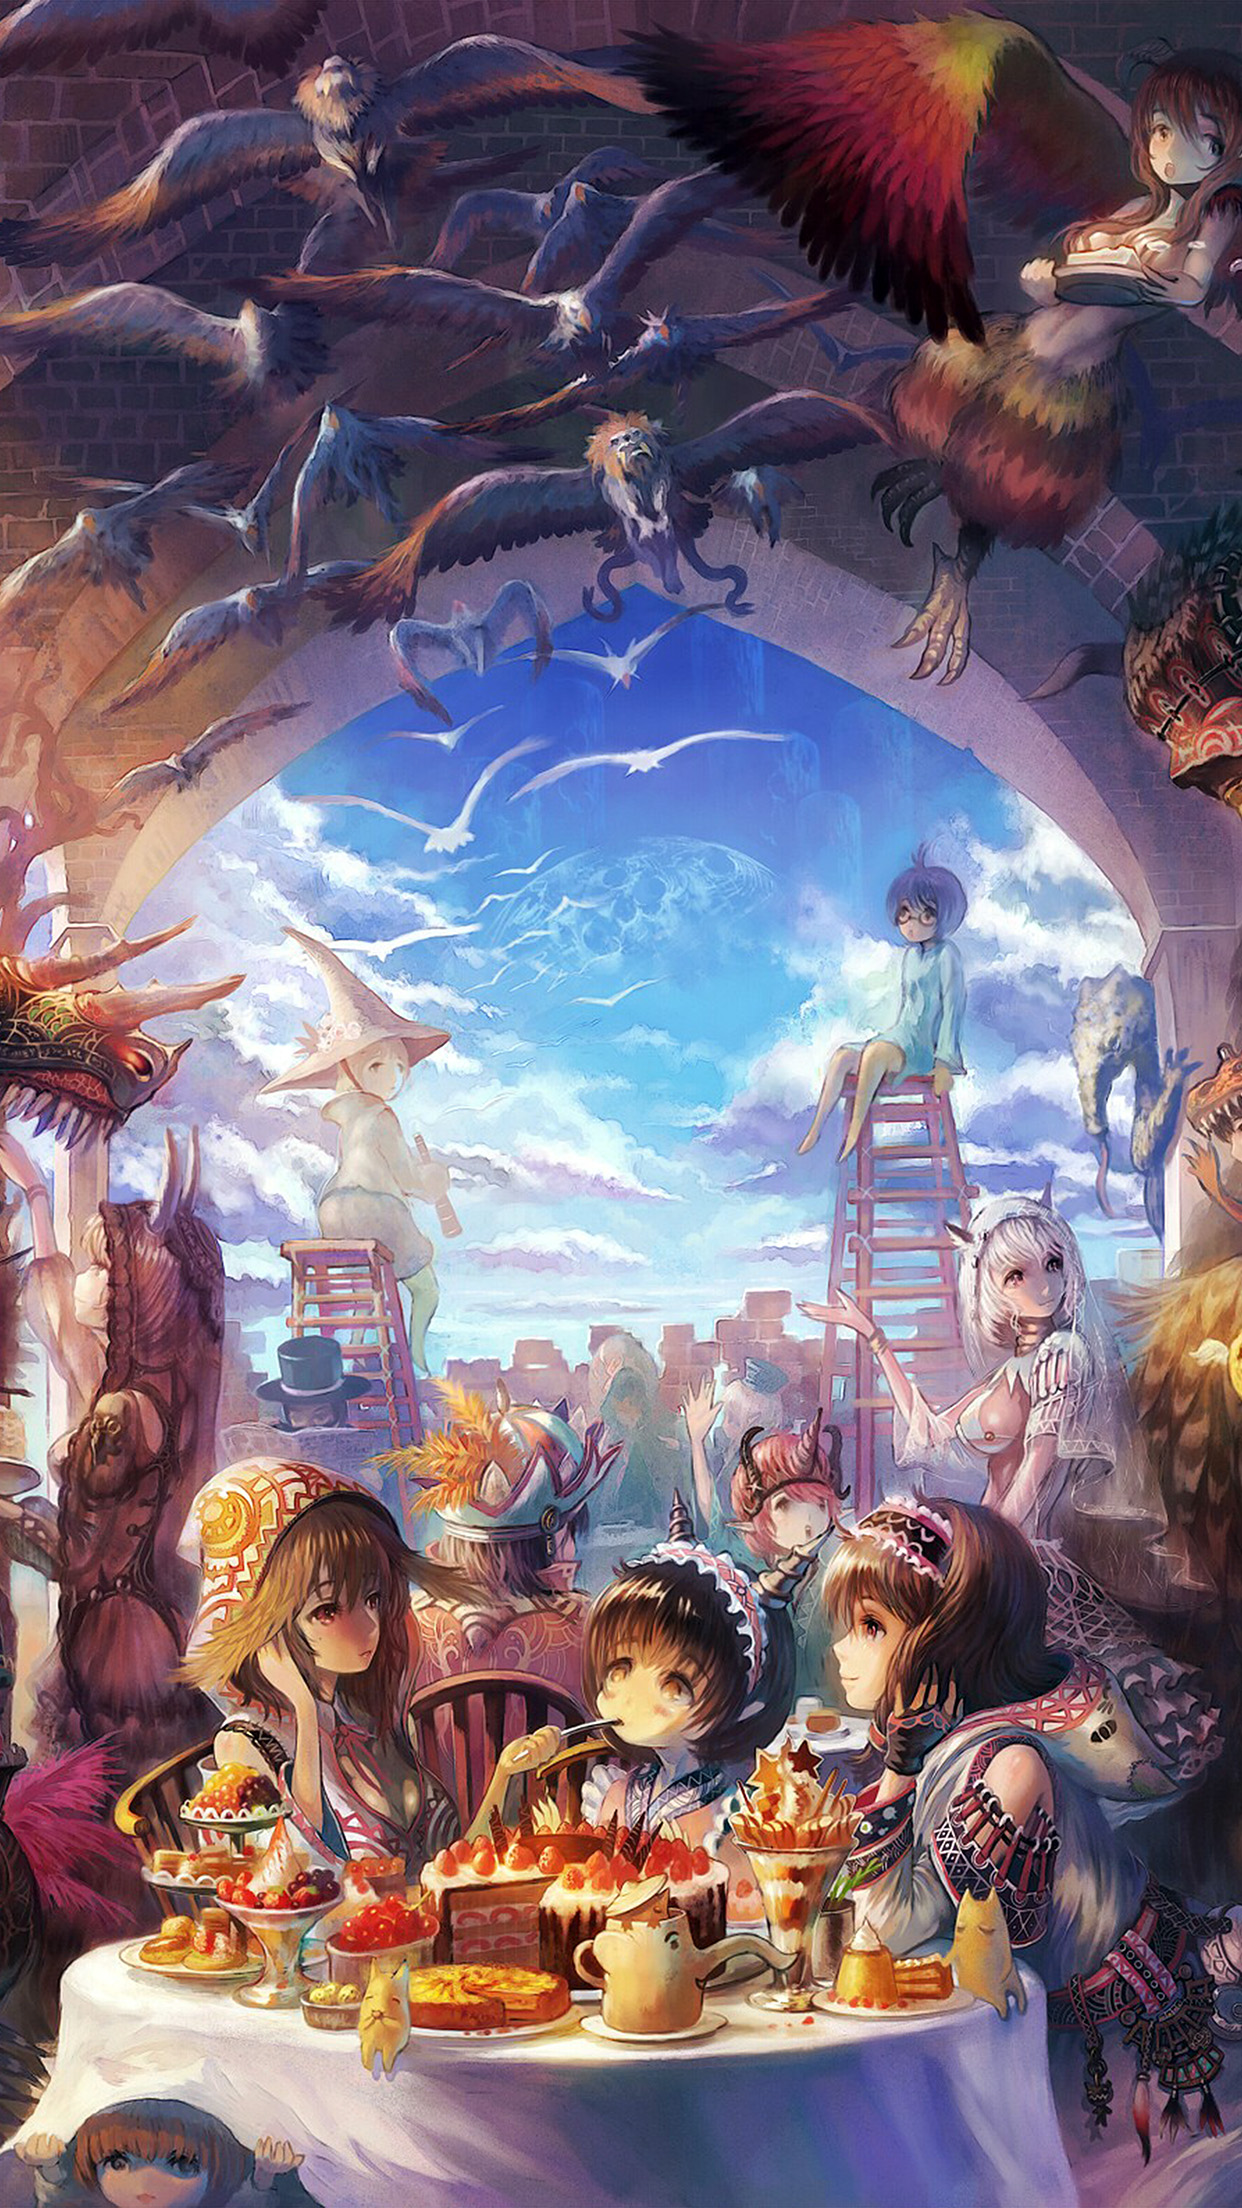 images?q=tbn:ANd9GcQh_l3eQ5xwiPy07kGEXjmjgmBKBRB7H2mRxCGhv1tFWg5c_mWT Best Of Anime Art For Android @koolgadgetz.com.info